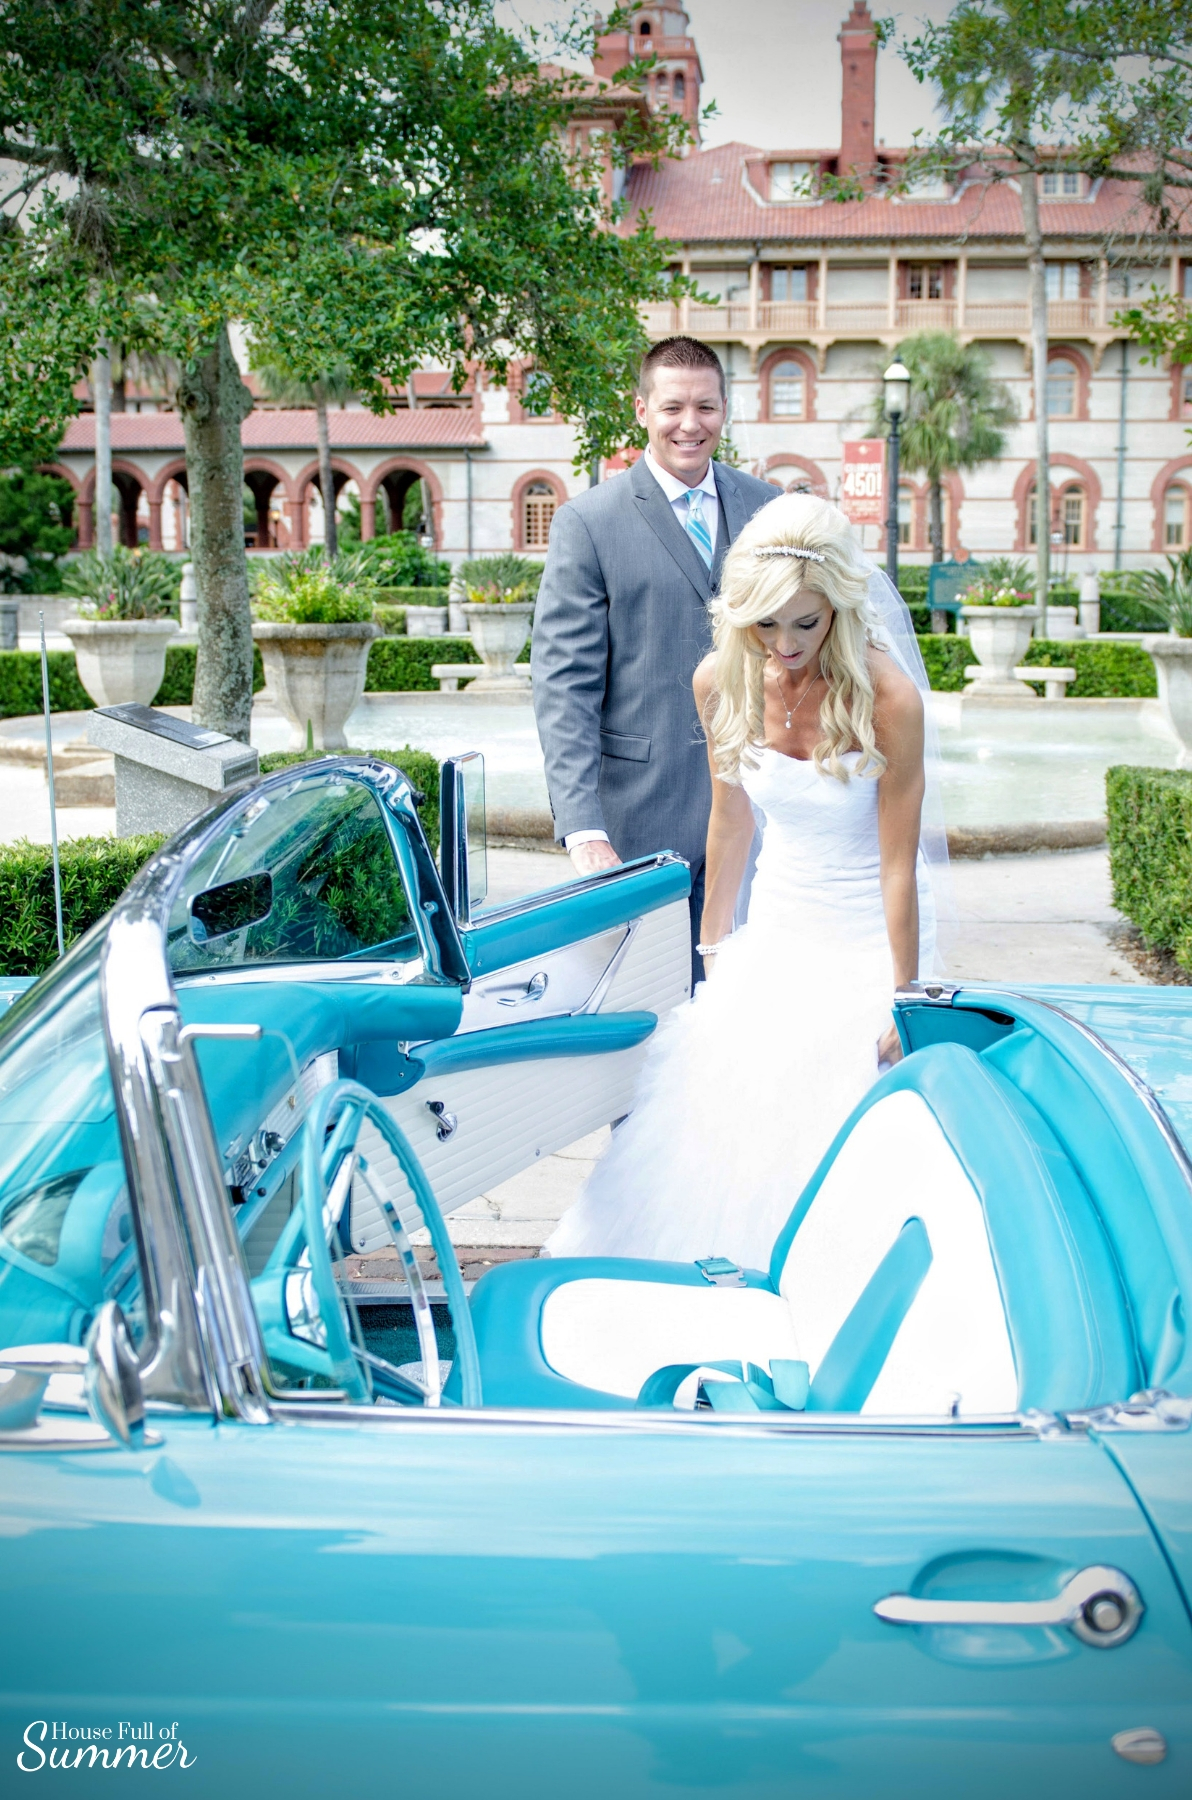 Why I Chose to Have a First Look on Our Wedding Day | House Full of Summer - wedding day ideas, first look photography ideas, first look with the groom, Florida wedding, St. Augustine, Lightner Museum, wedding dress, botanical garden, Southern charm wedding,